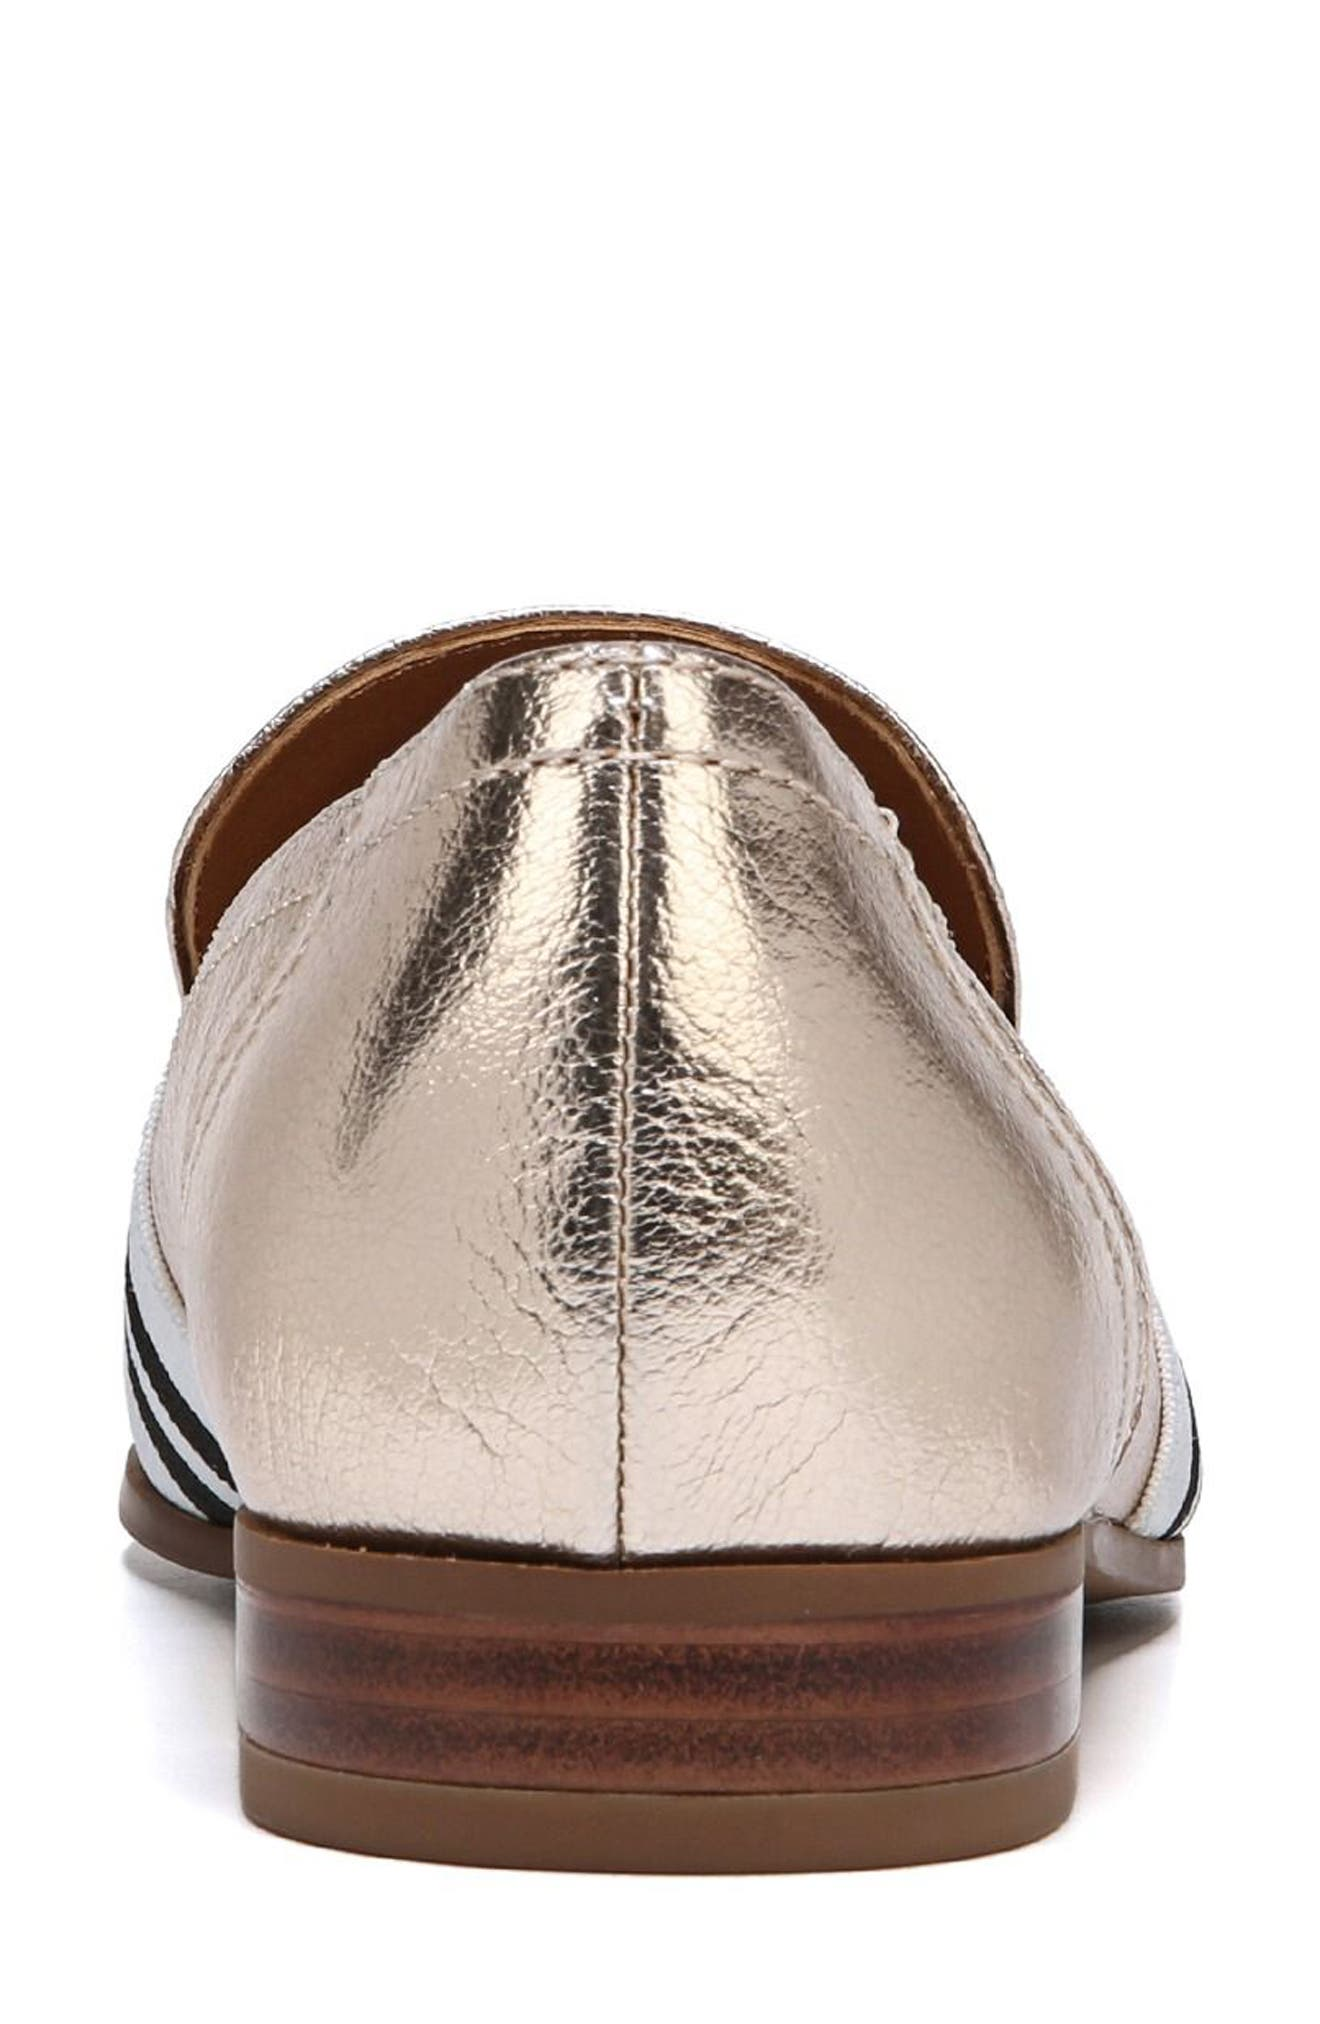 Odyssey Loafer,                             Alternate thumbnail 2, color,                             PLATINO LEATHER